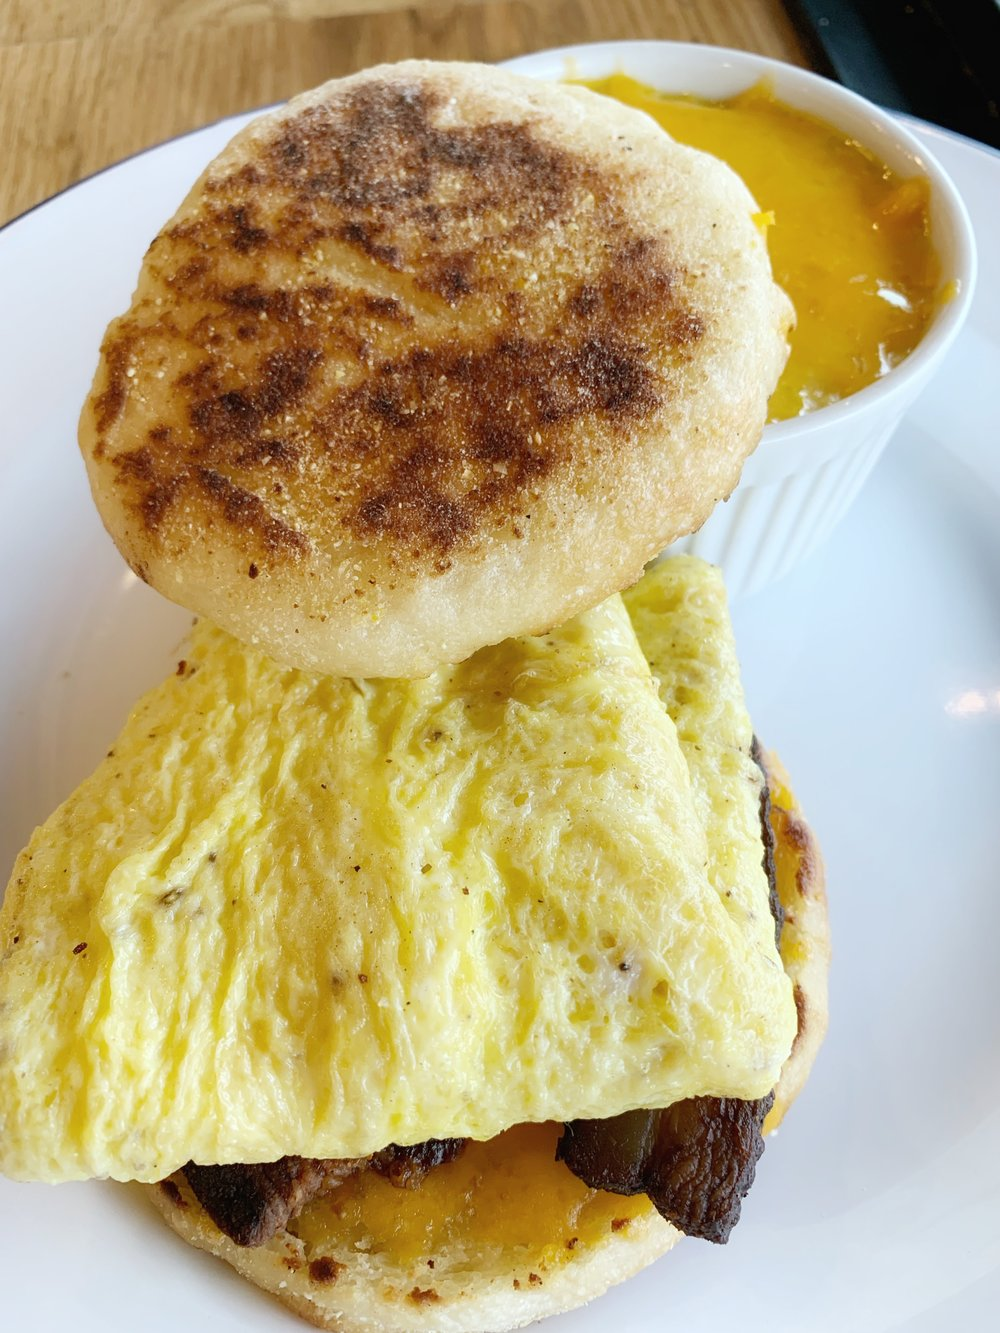 Andrew's Breakfast Sandwich - House English muffin, omelet with Ashe county sharp cheddar and choice of house bacon, sausage, or tempeh sausageHouse-made English muffins are the stuff of life.